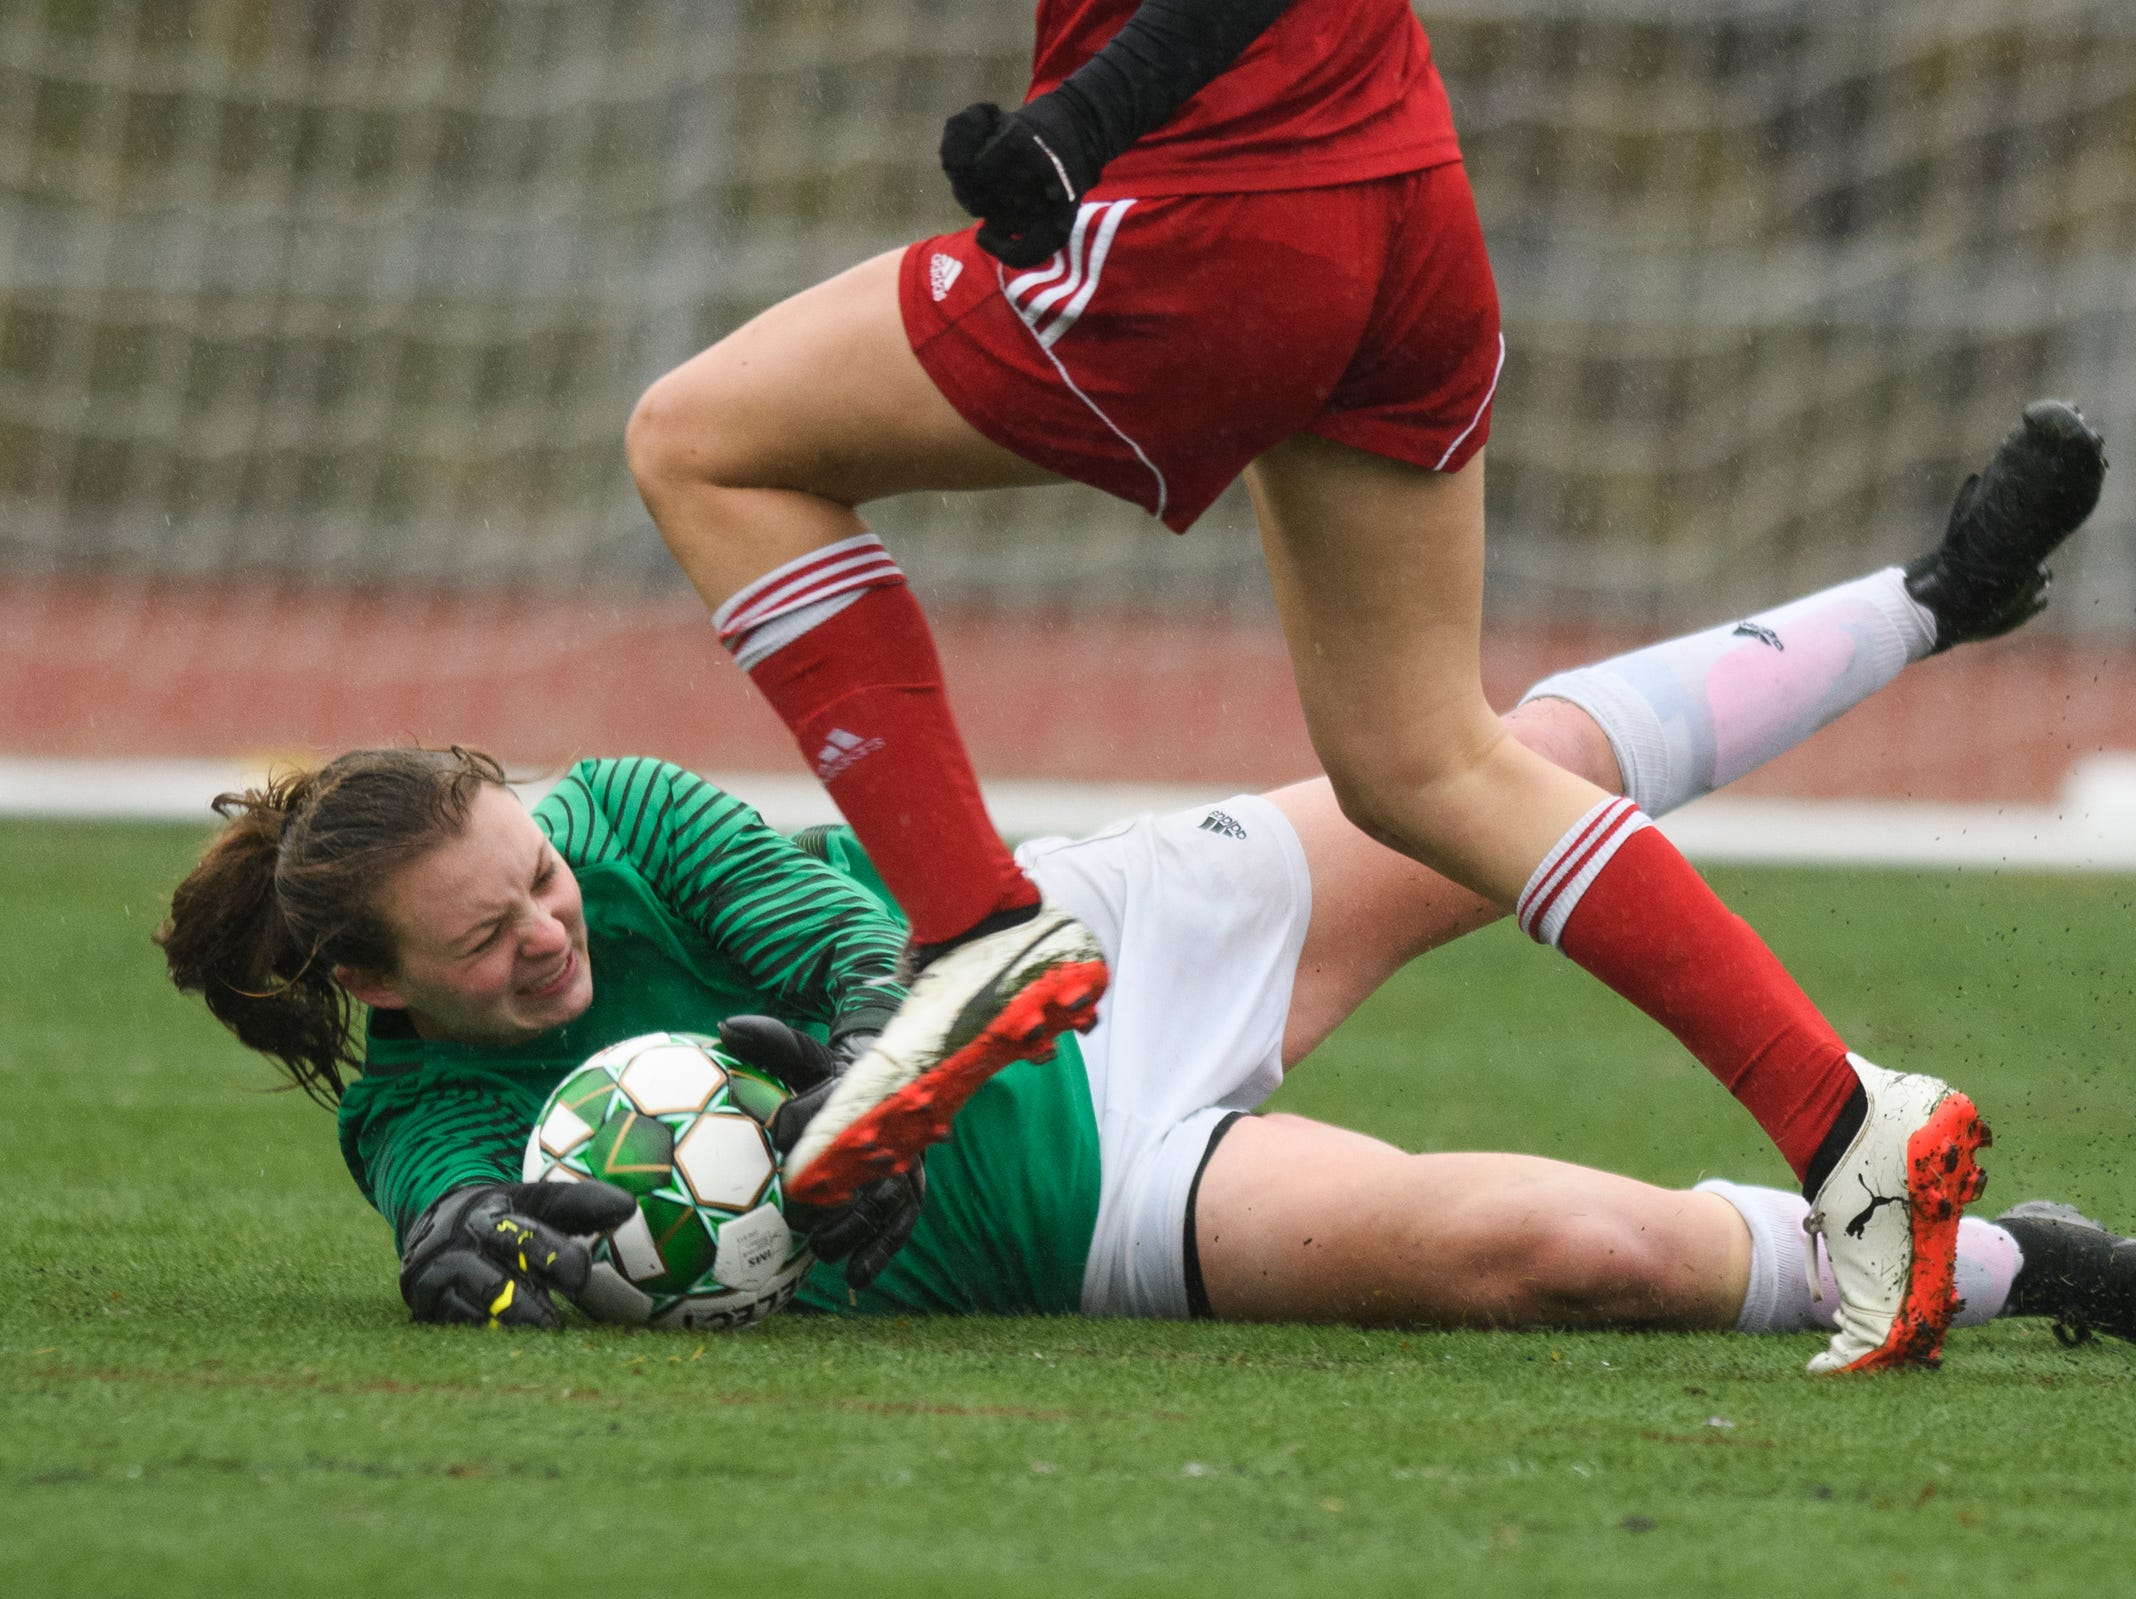 Colchester goalie Olivia Moore makes a diving save on a shot by CVU's Josie Pecor (22) during the division I girls soccer championship game between the Colchester Lakers and the Champlain Valley Union Redhawks at Buck Hard Field on Saturday morning November 3, 2018 in Burlington.